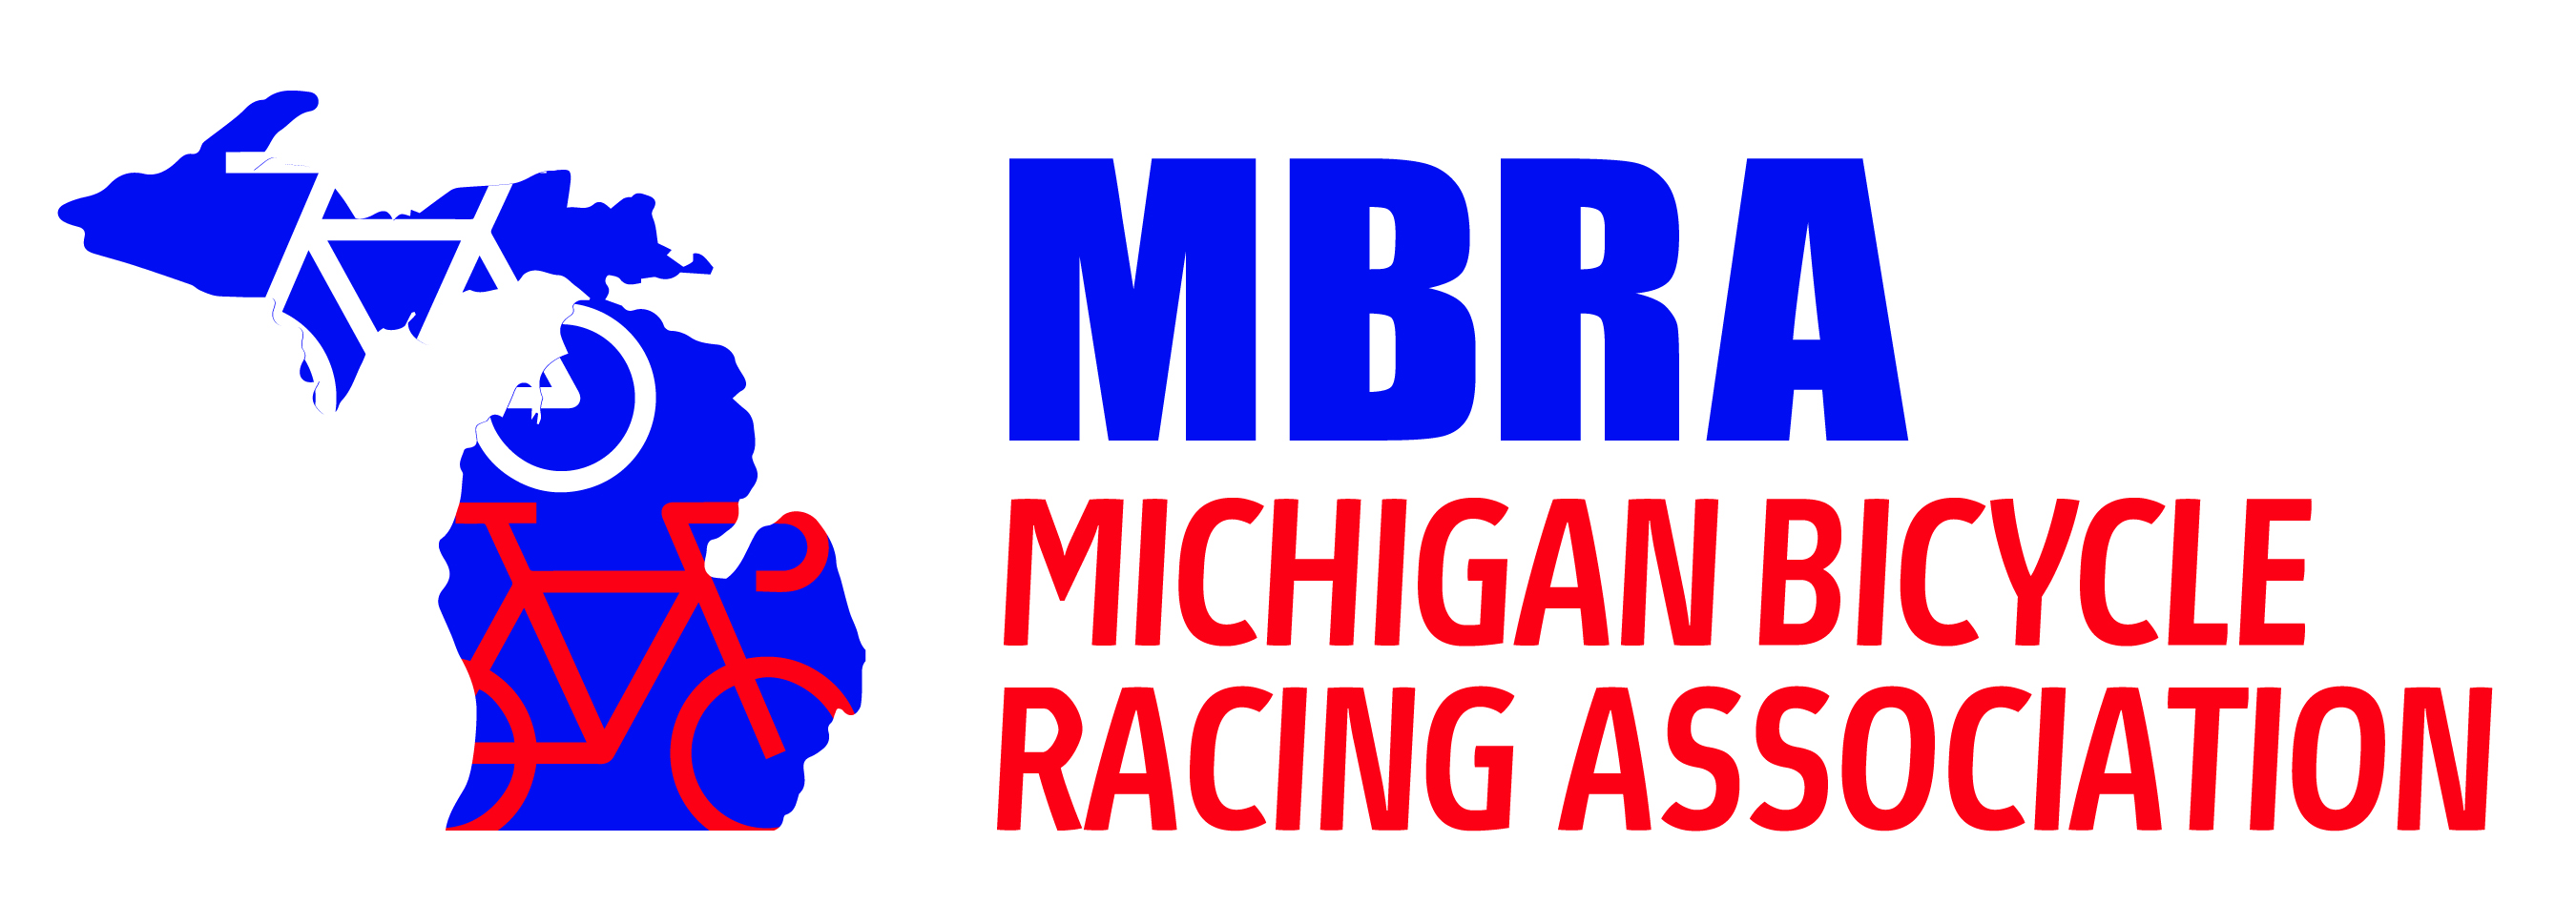 Michigan Bicycle Racing Association (MBRA)